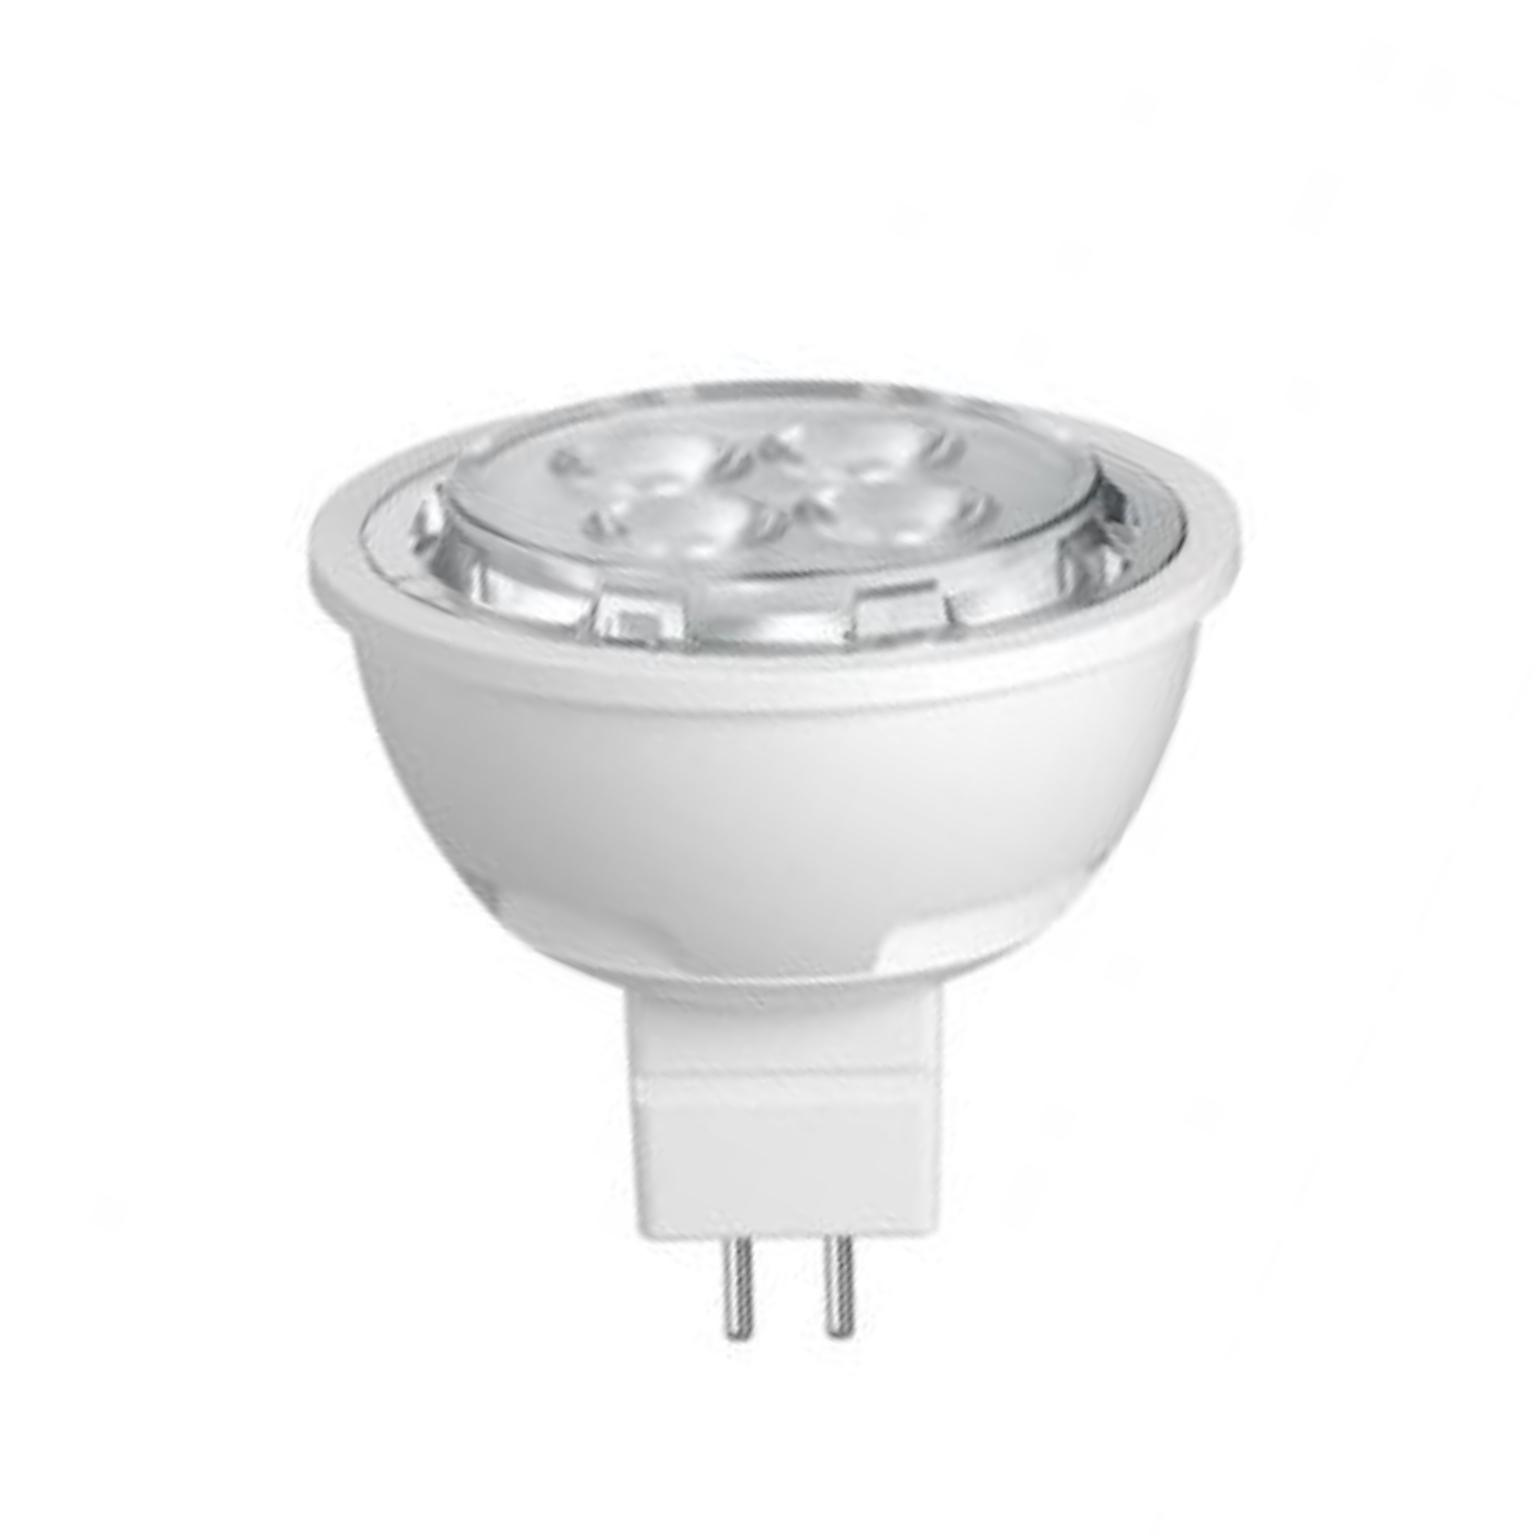 MR16 lamp - 250 lumen